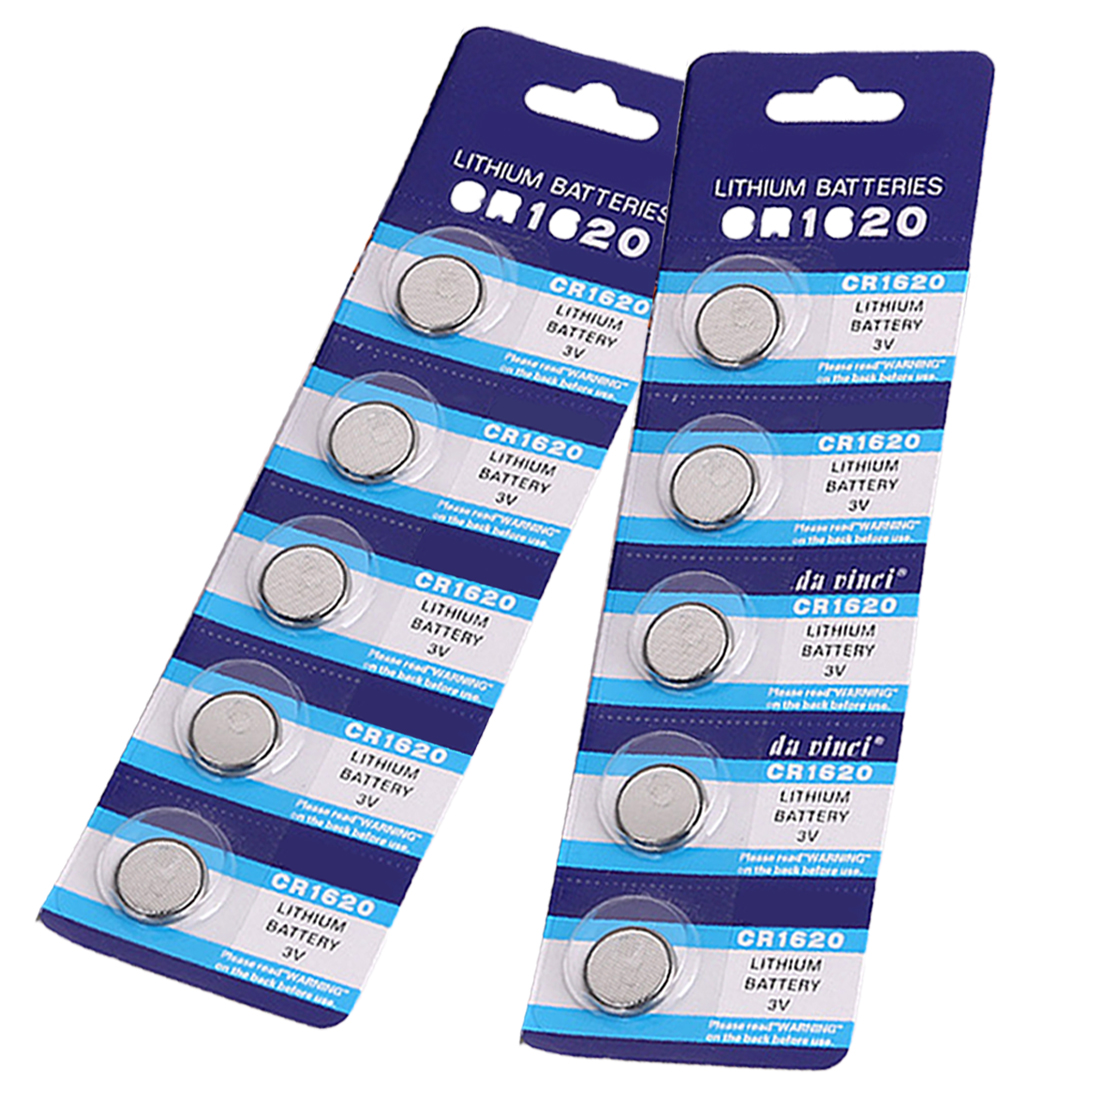 5pcs Lot CR1620 1620 ECR1620 DL1620 280 208 3V Cell Battery Button Battery Coin Battery lithium battery For Watches clocks in Button Cell Batteries from Consumer Electronics